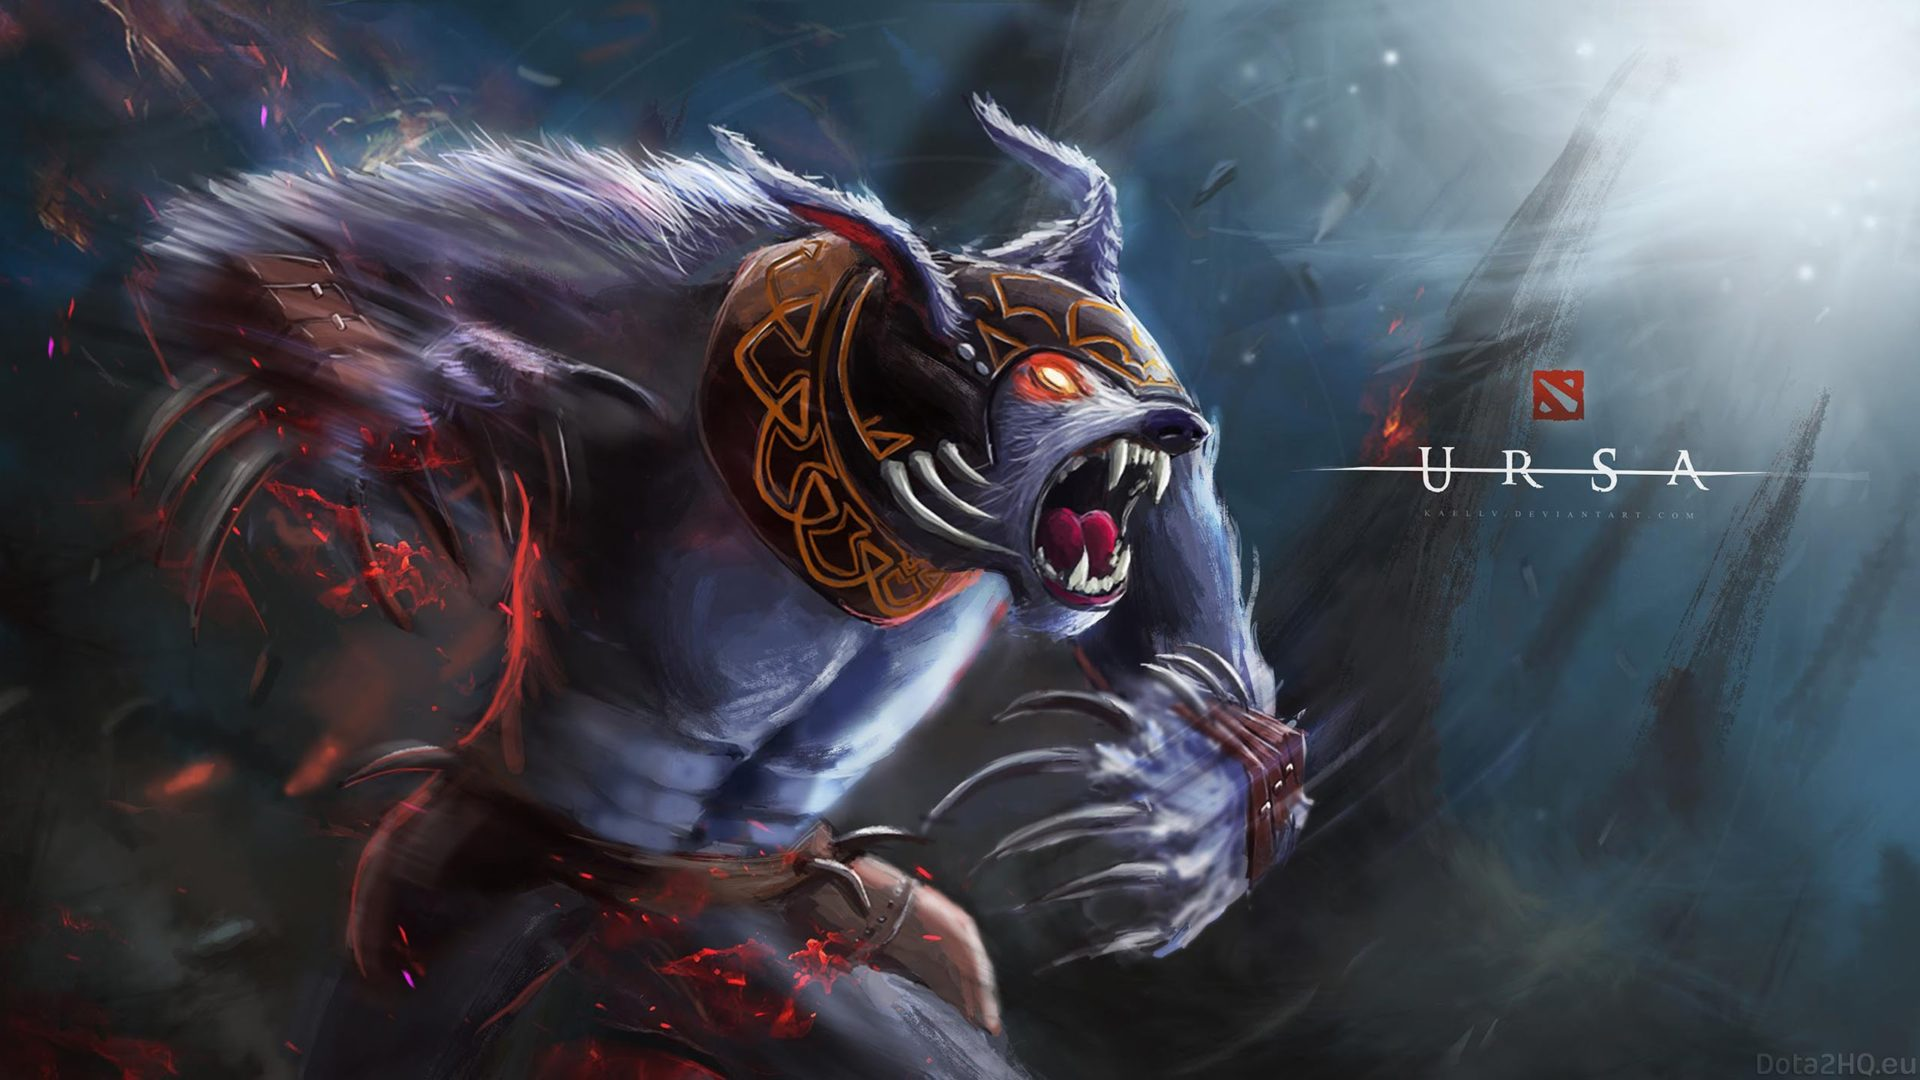 Dota 2 Heroes Ursa Roles Carry Jungler Disabler Durable Fan Art Wallpaper Hd 2560x1440